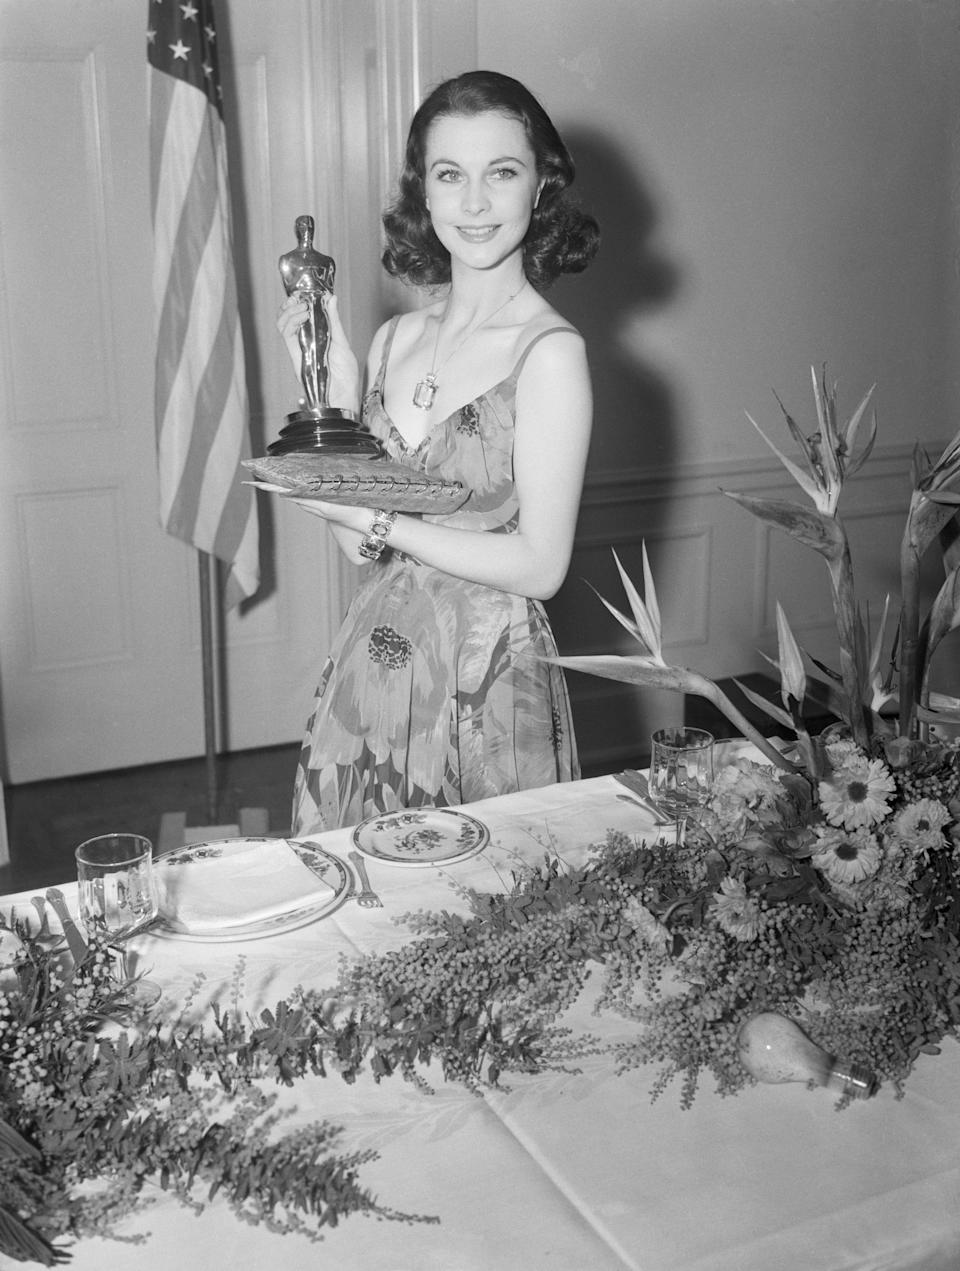 When Vivien Leigh collected her Best Actress statuette in 1940, she did it in true old Hollywood fashion. Dressed in a custom dress by Irene Lentz Gibbons, MGM's costume supervisor whose private salon at legendary Wilshire Boulevard department store, Bullocks, was a favorite of the era's stars, Leigh accessorized with a good luck charm from then-husband Laurence Olivier. Her Van Cleef & Arpel's aquamarine pendant had been a gift from Olivier after she'd wrapped production on <em>Gone with the Wind.</em> Though it could also be worn as a brooch, Leigh kept the oversized statement piece on a long gold chain during the ceremony.